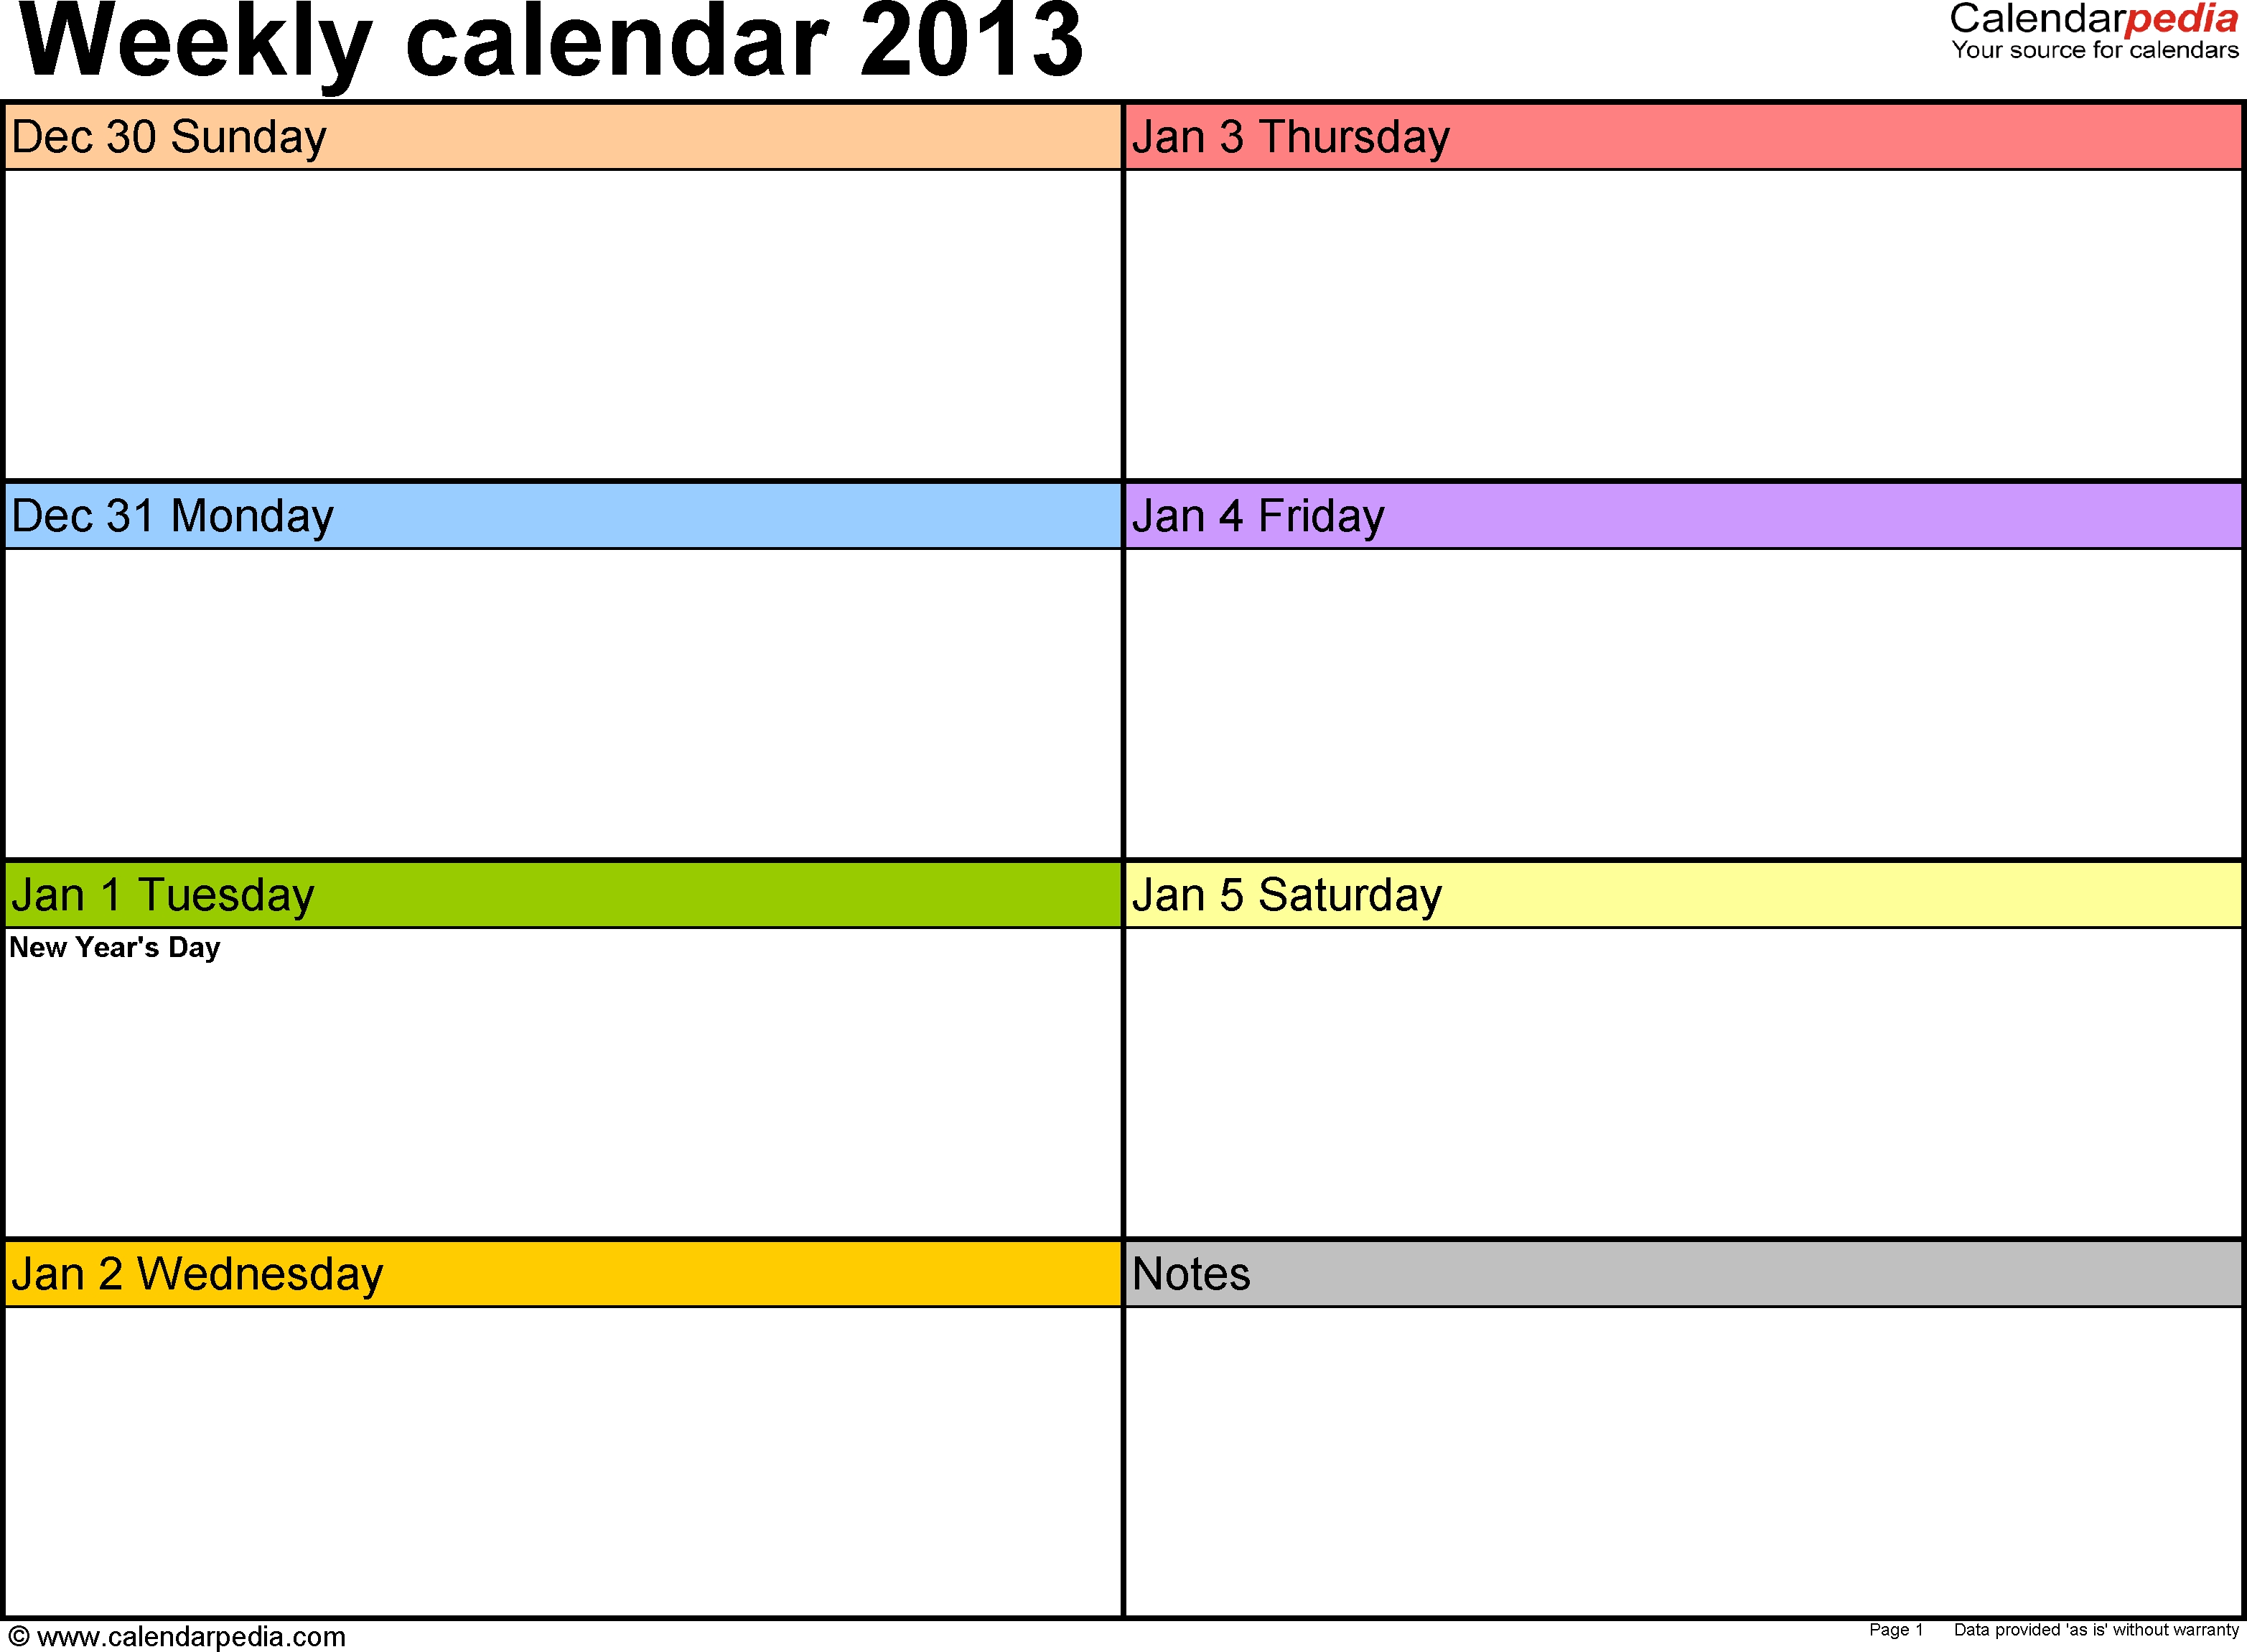 Weekly Calendar 2013 For Word - 4 Free Printable Templates within Monthly Planner Template For Children